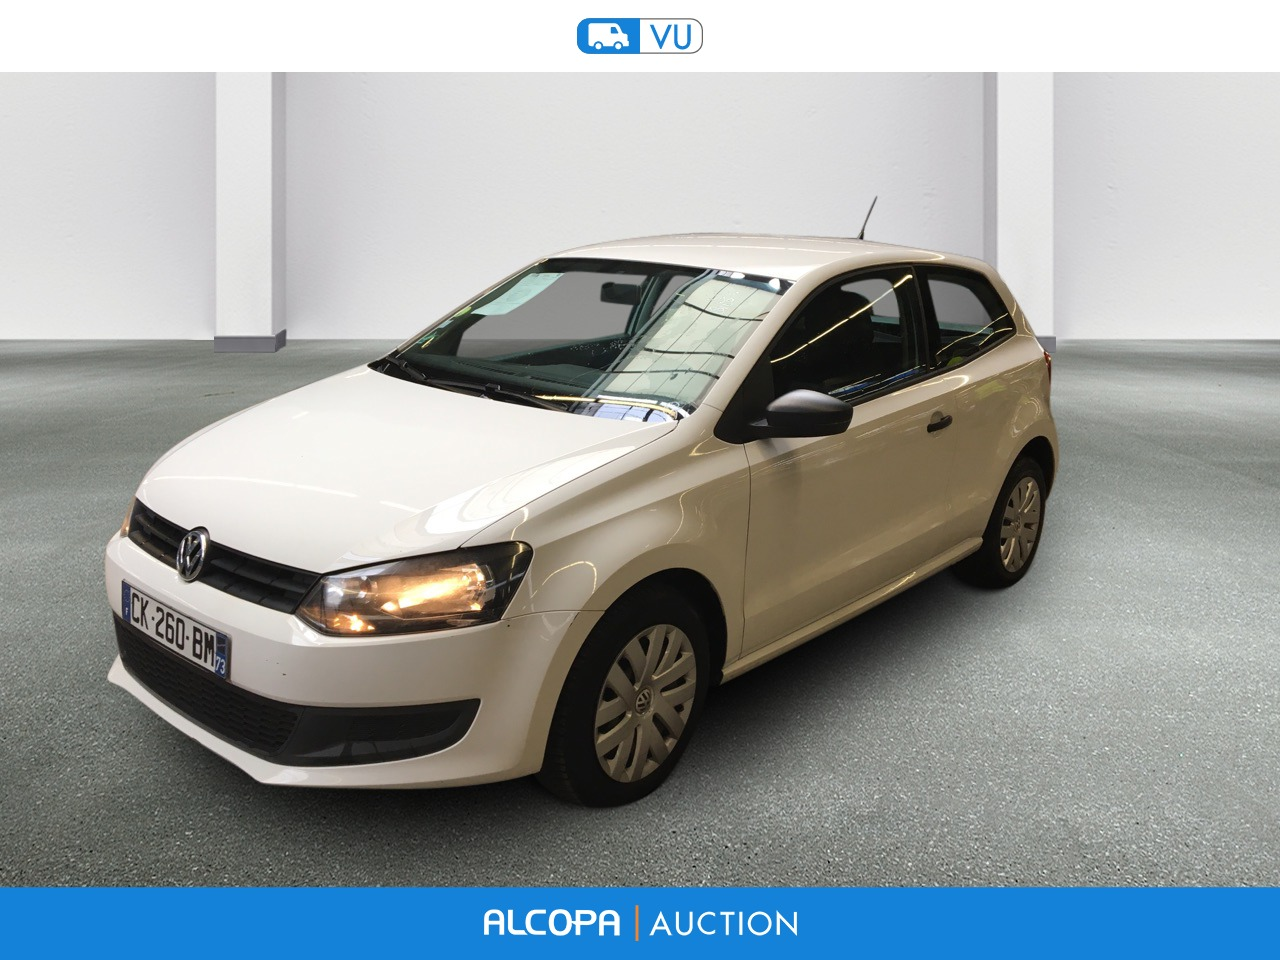 volkswagen polo polo 1 6 tdi 90 cr fap trendline alcopa auction. Black Bedroom Furniture Sets. Home Design Ideas